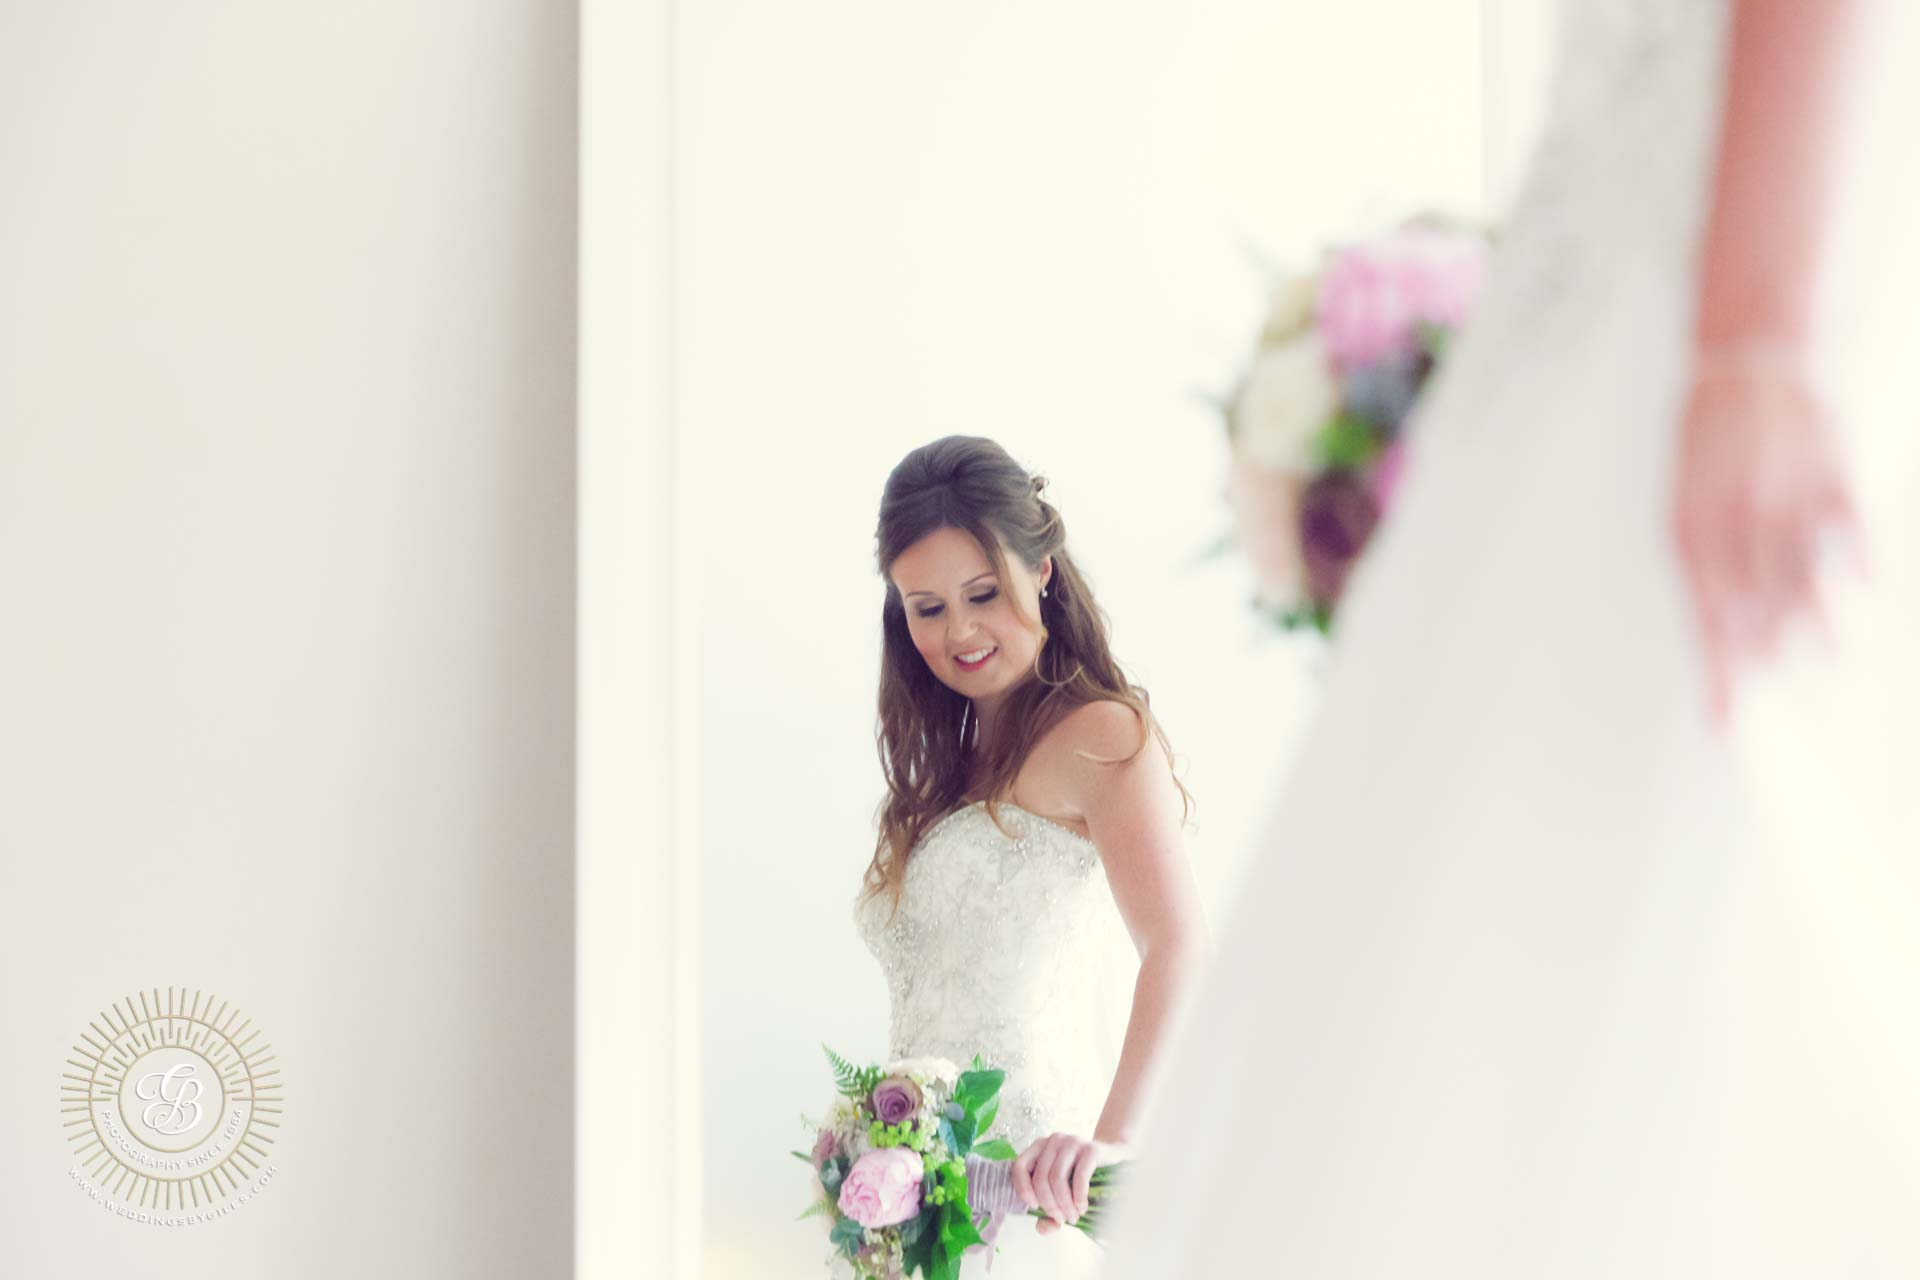 Bride looks as her bouquet